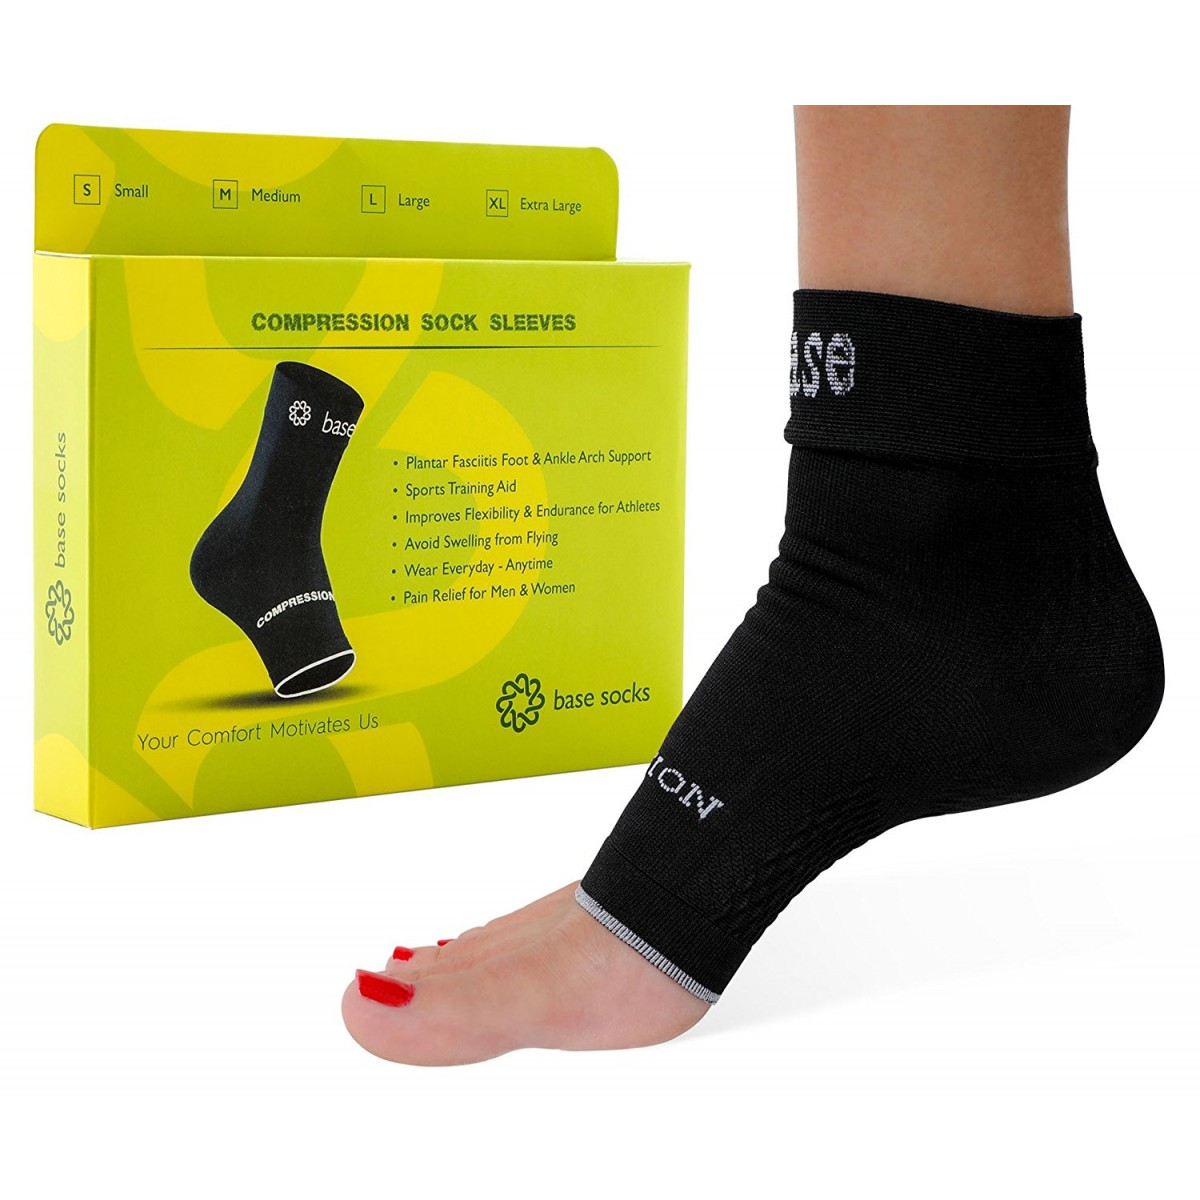 c2ad7af6ddb Plantar Fasciitis Socks - BEST German Medical Grade Compression Foot Sleeves  – Ideal for Foot Care, Ankle and Arch ...